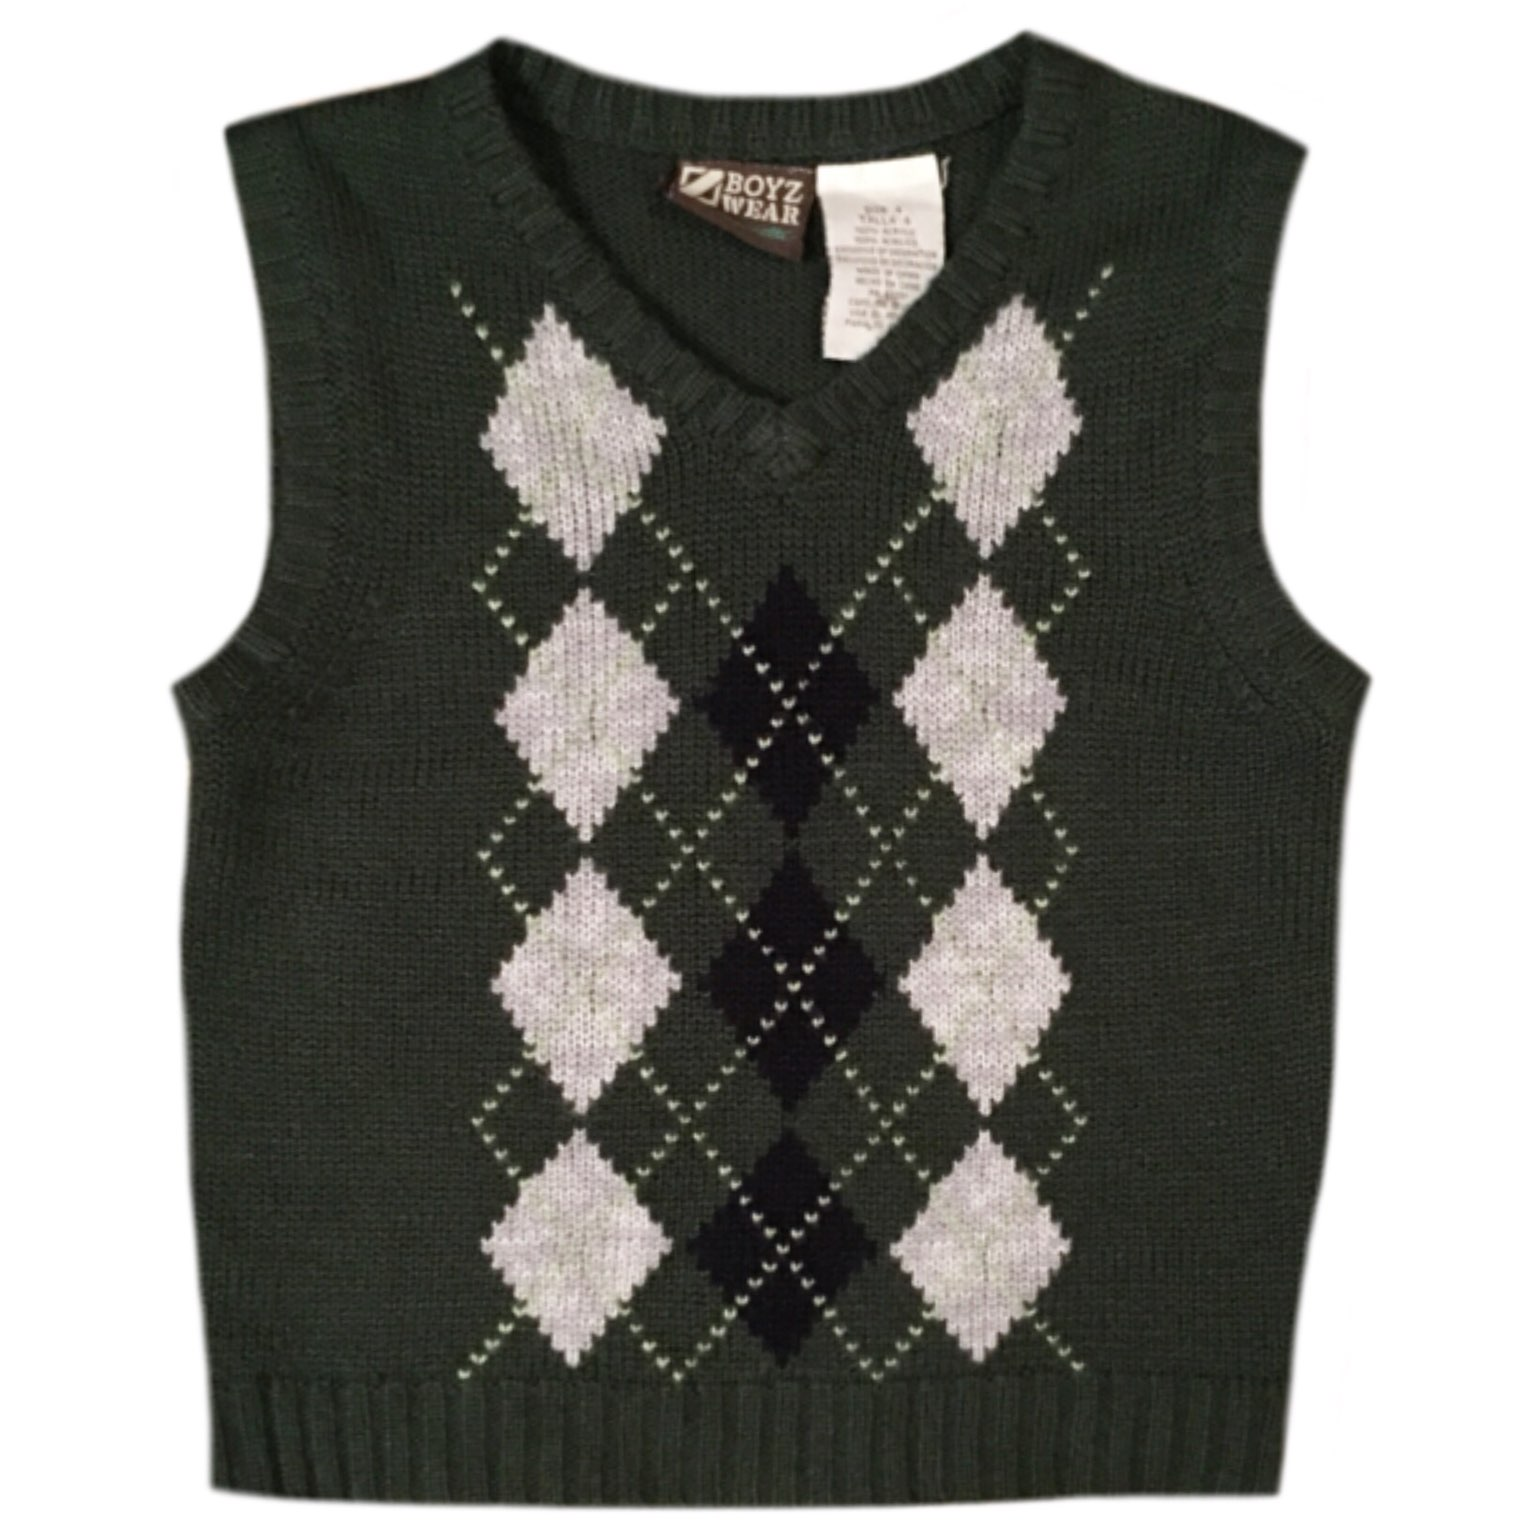 Boyz Wear Green Sweater Vest - Mercari: BUY & SELL THINGS YOU LOVE